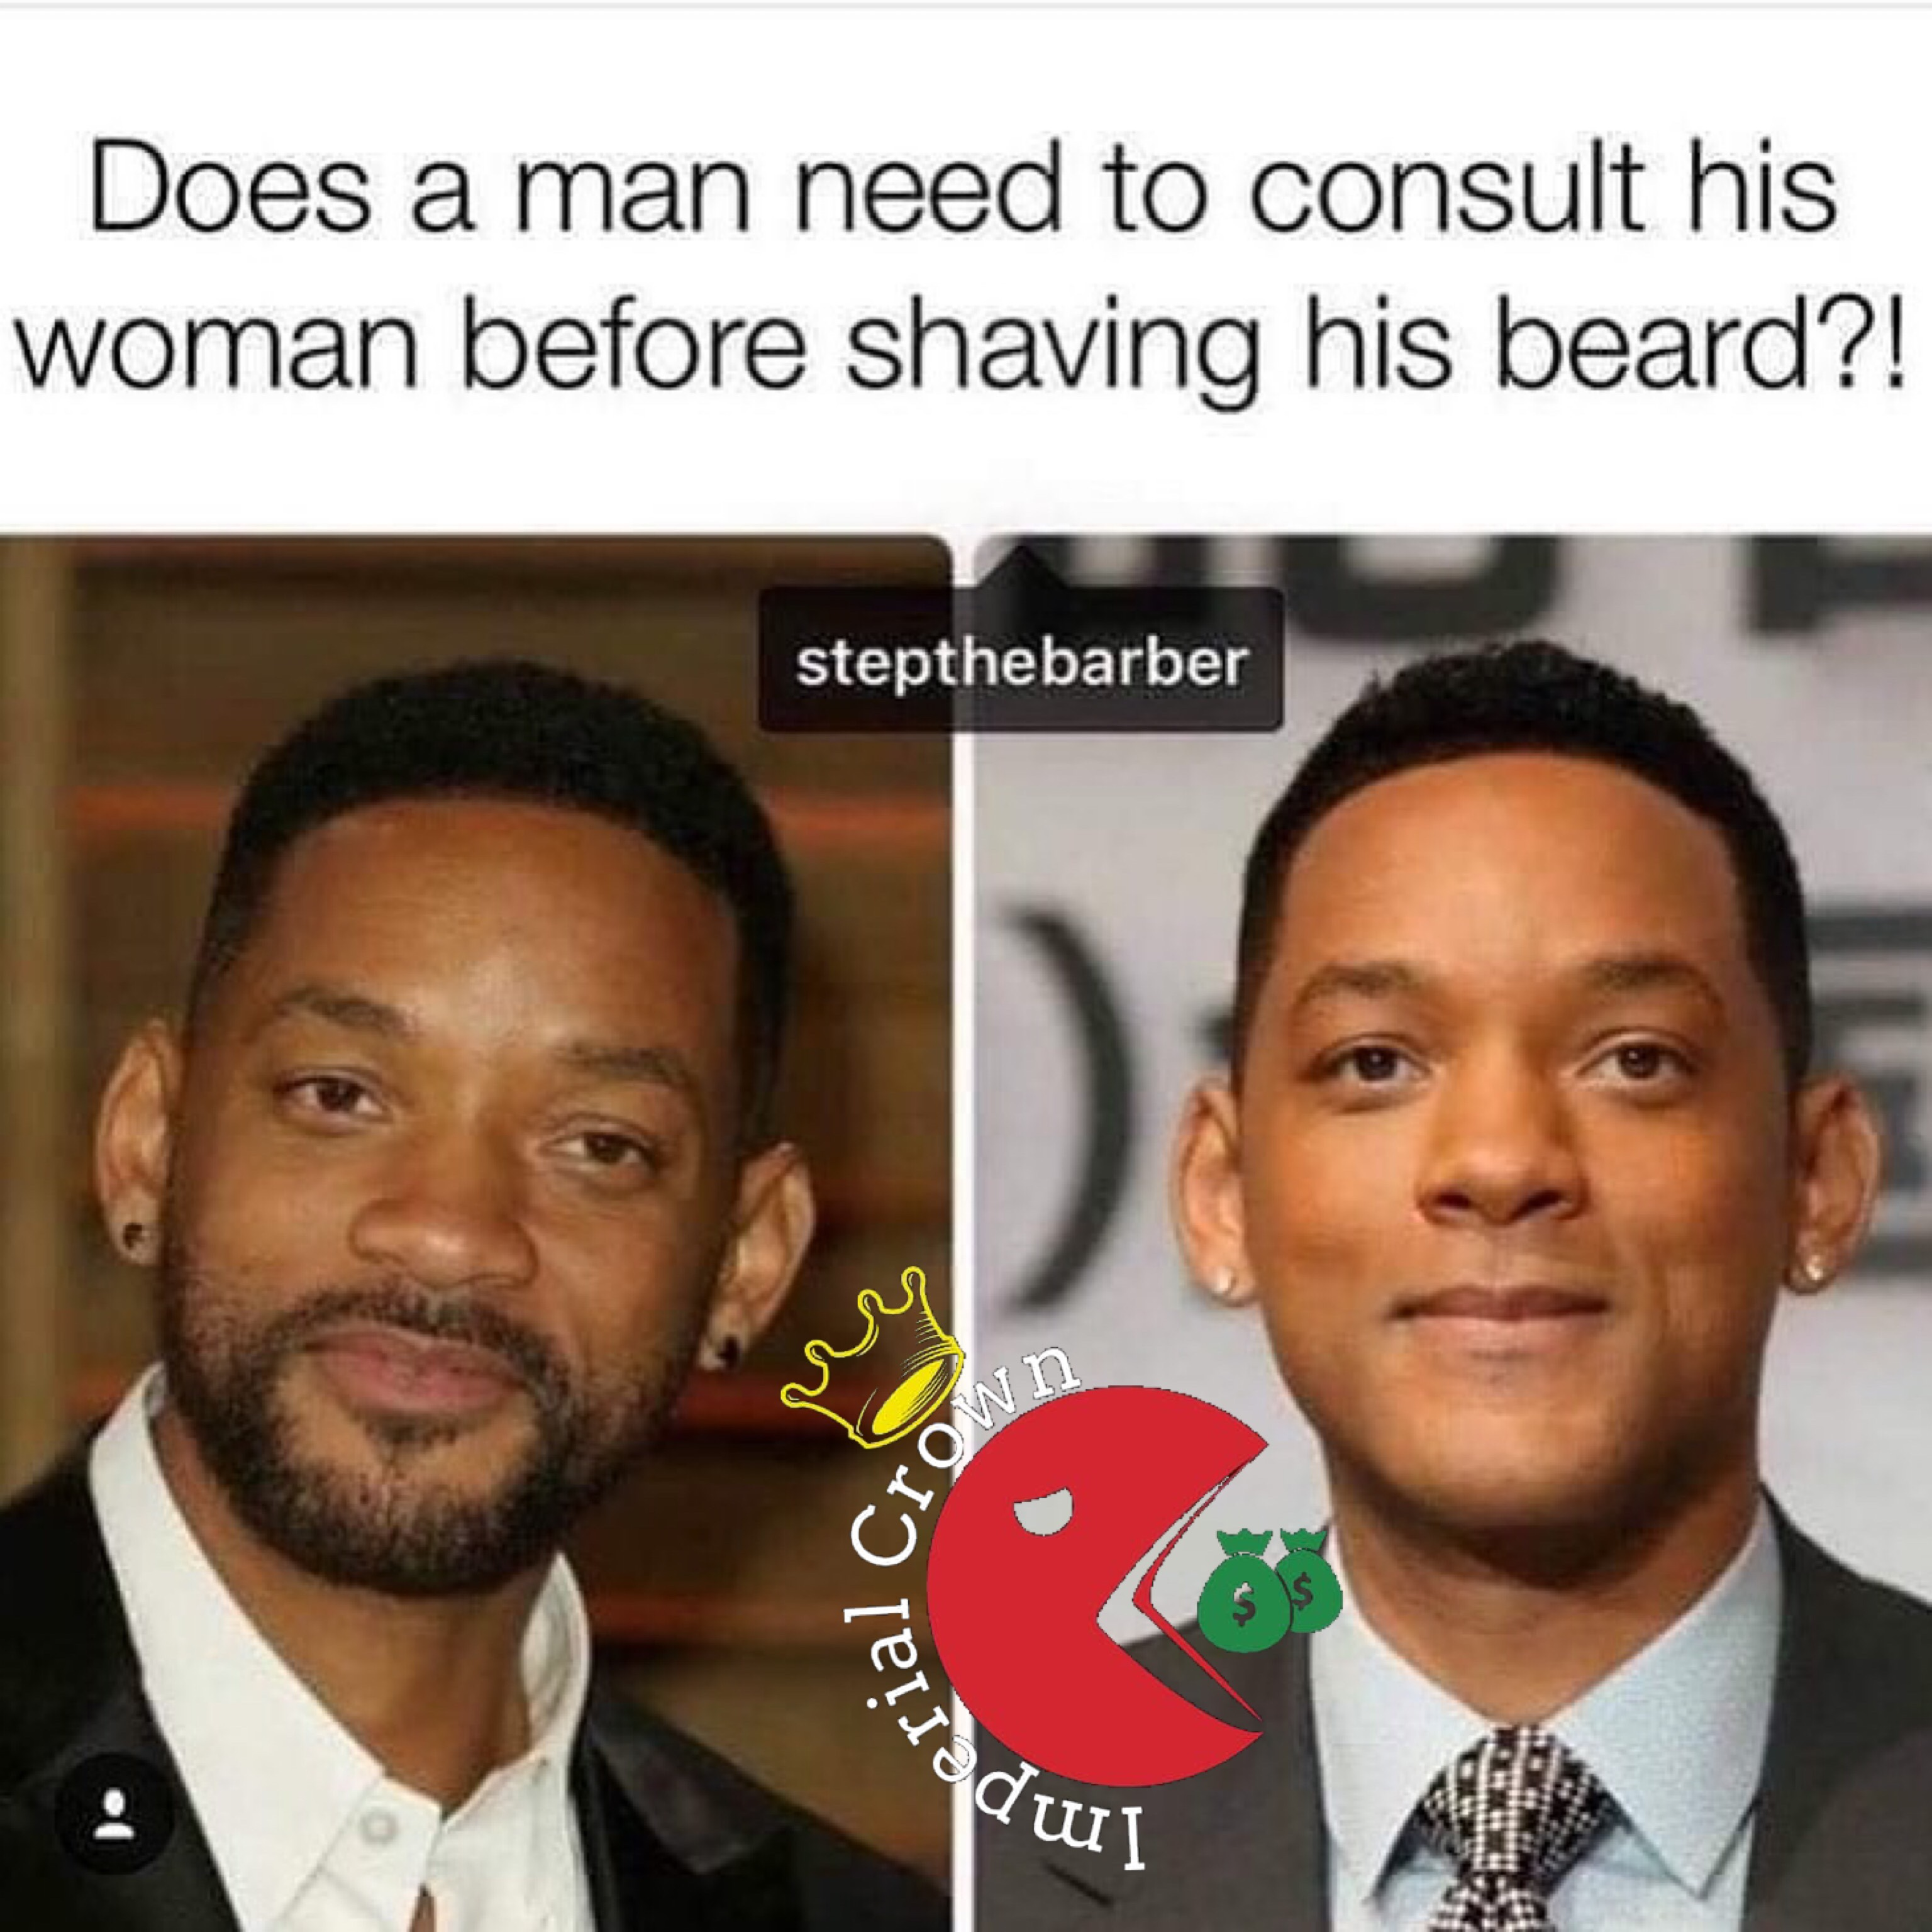 Does a man need to consult his woman before shaving his beard